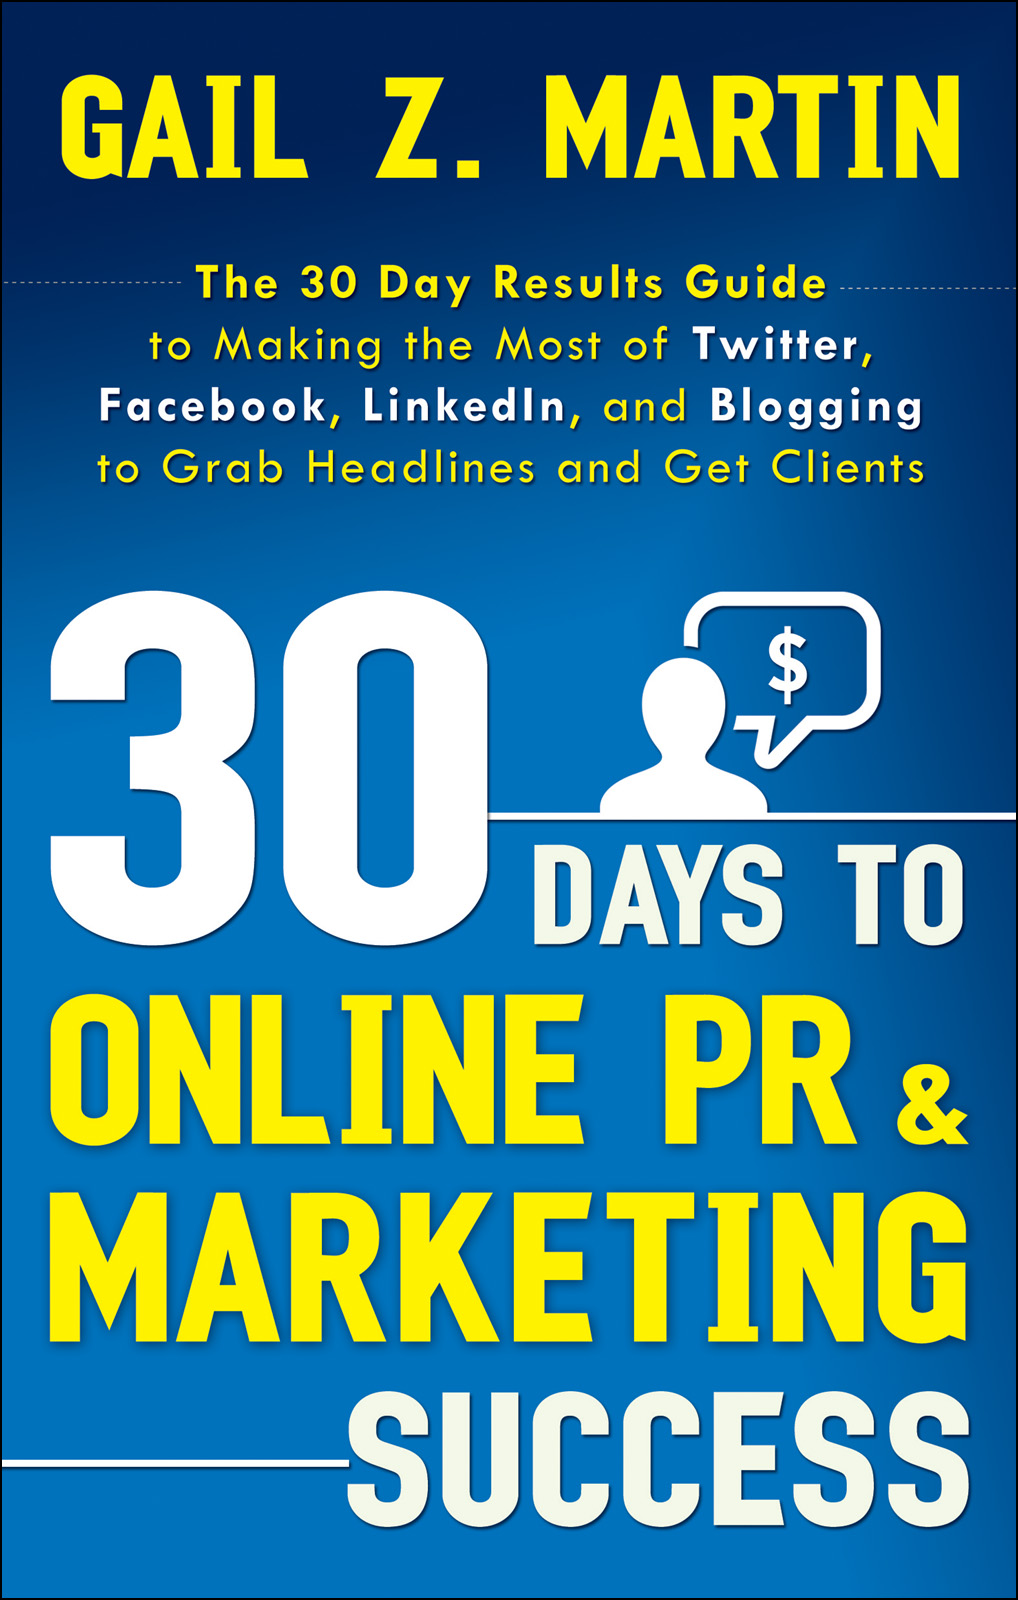 Gail Z. Martin 30 Days to Online PR and Marketing Success paula wynne pimp my site the diy guide to seo search marketing social media and online pr